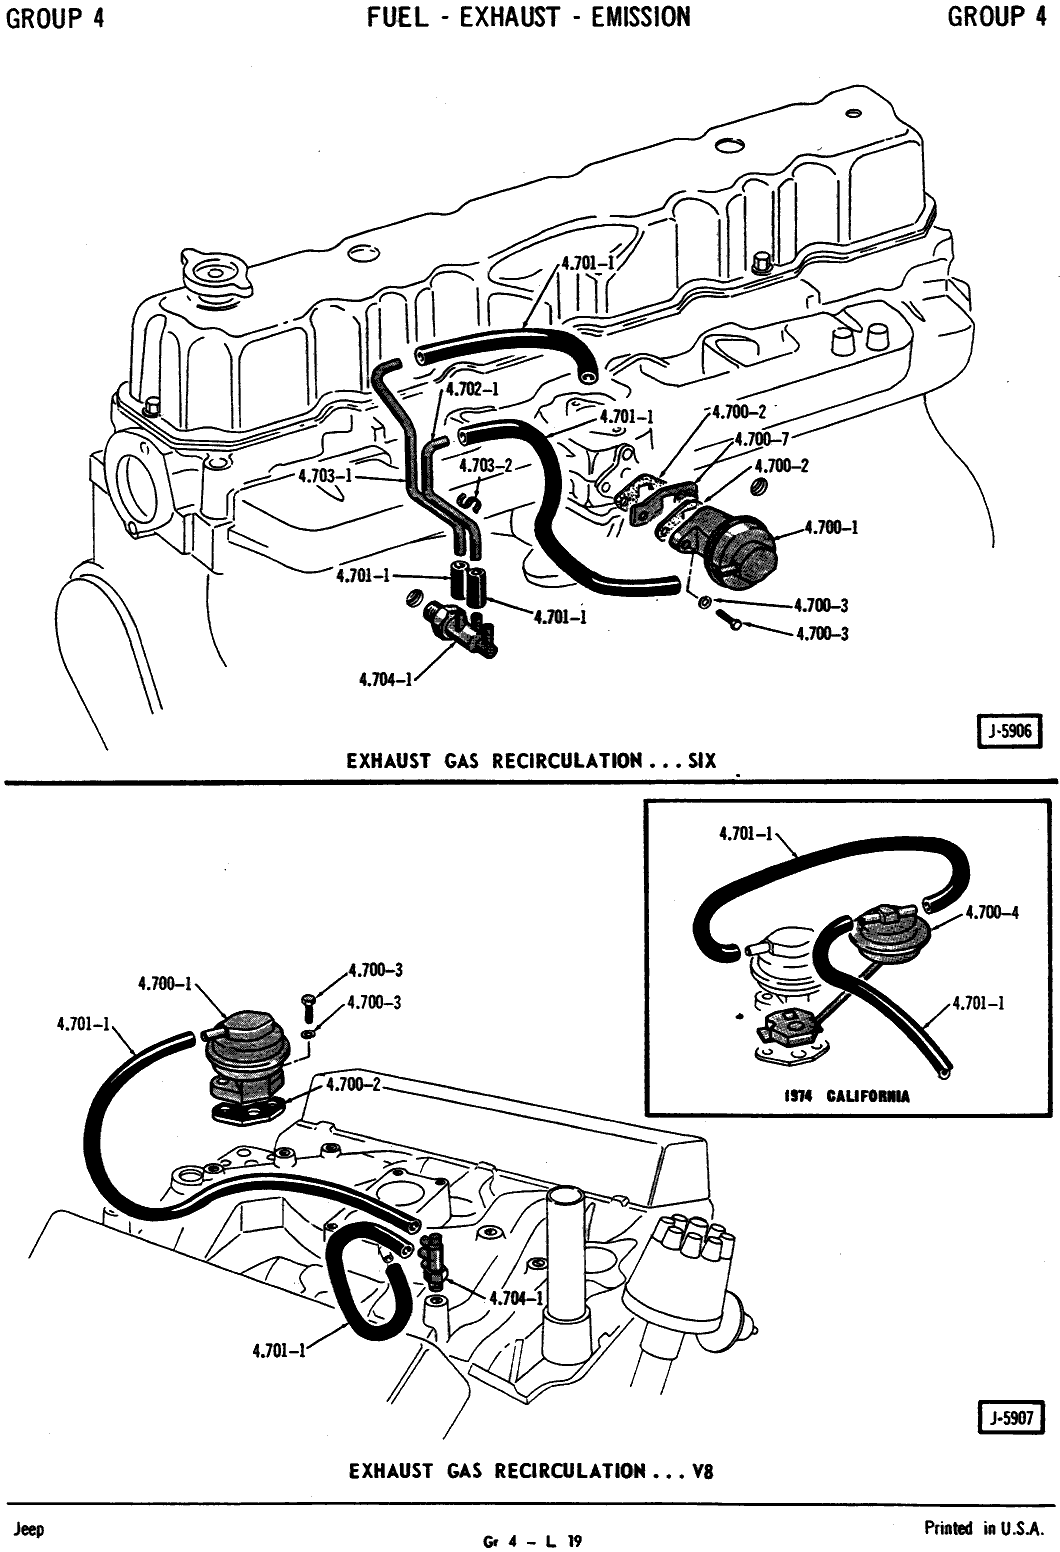 wiring diagram 94 chevy 350 engine tbi duramax pcm wiring harness duramax manual repair wiring and engine wiring diagram 94 chevy 350 engine